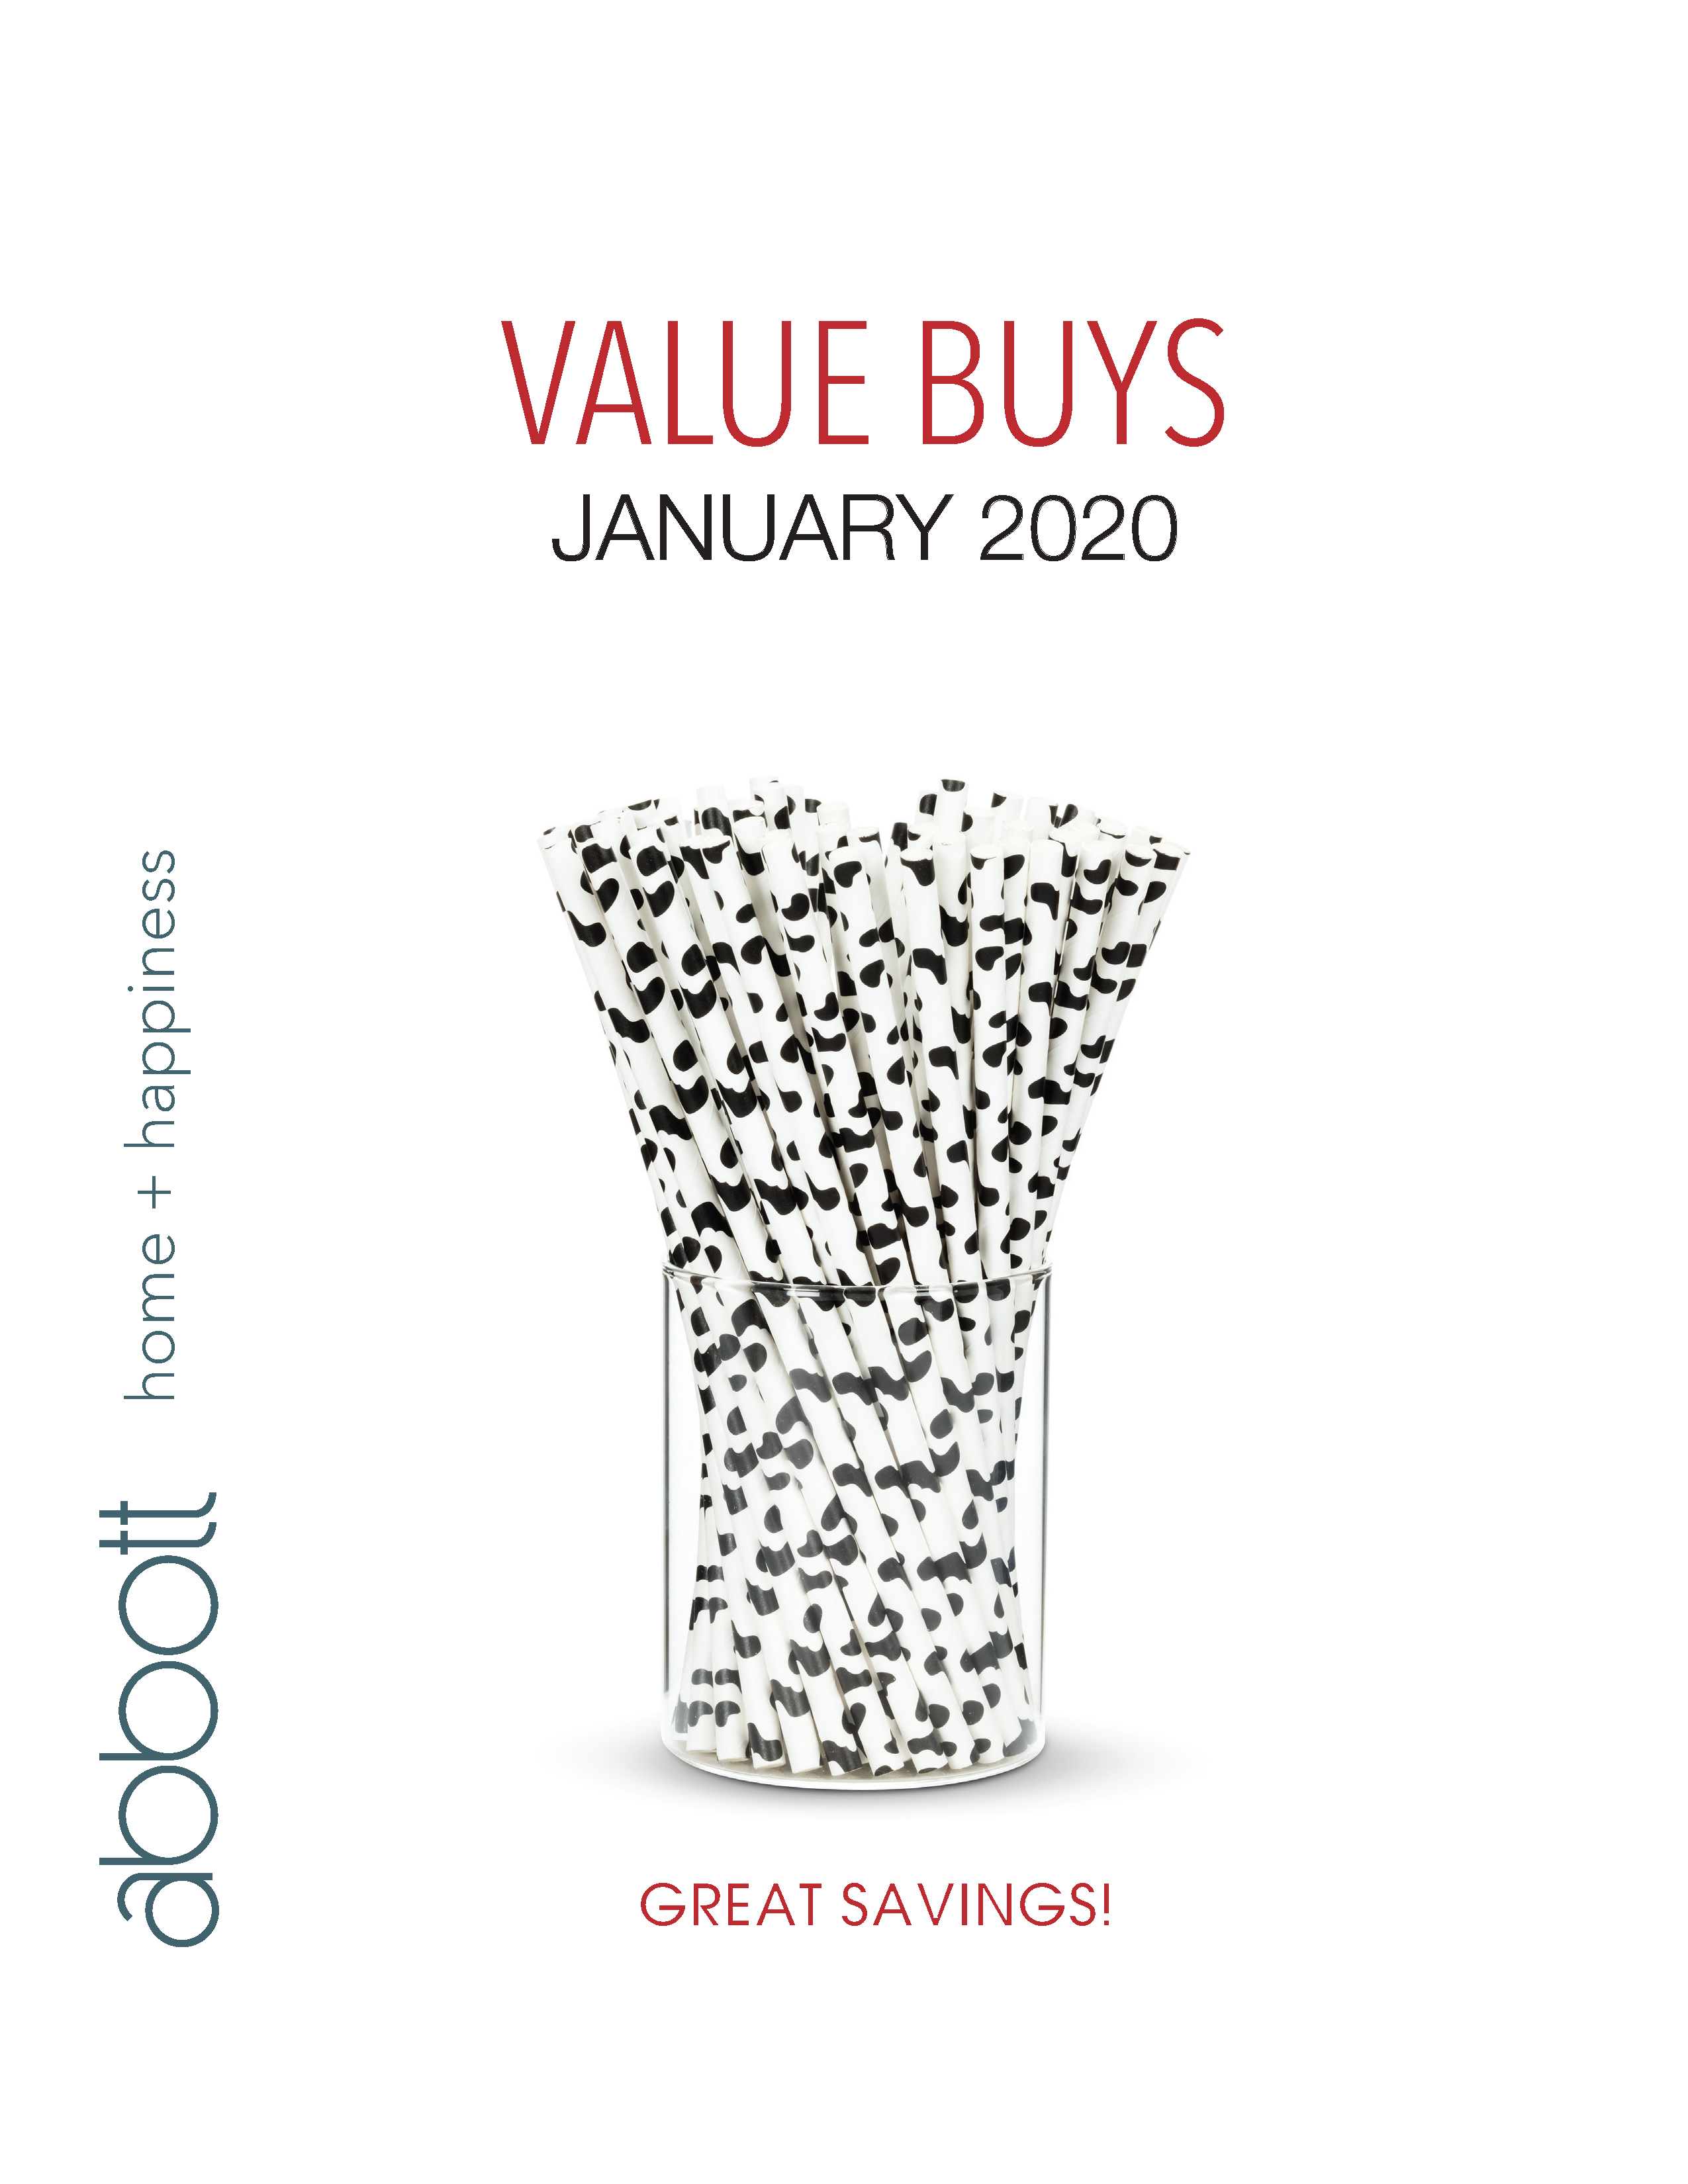 https://assets.abbottcollection.com/wp-content/uploads/2020/02/05112418/Value-Buys-Jan2020-cover.png